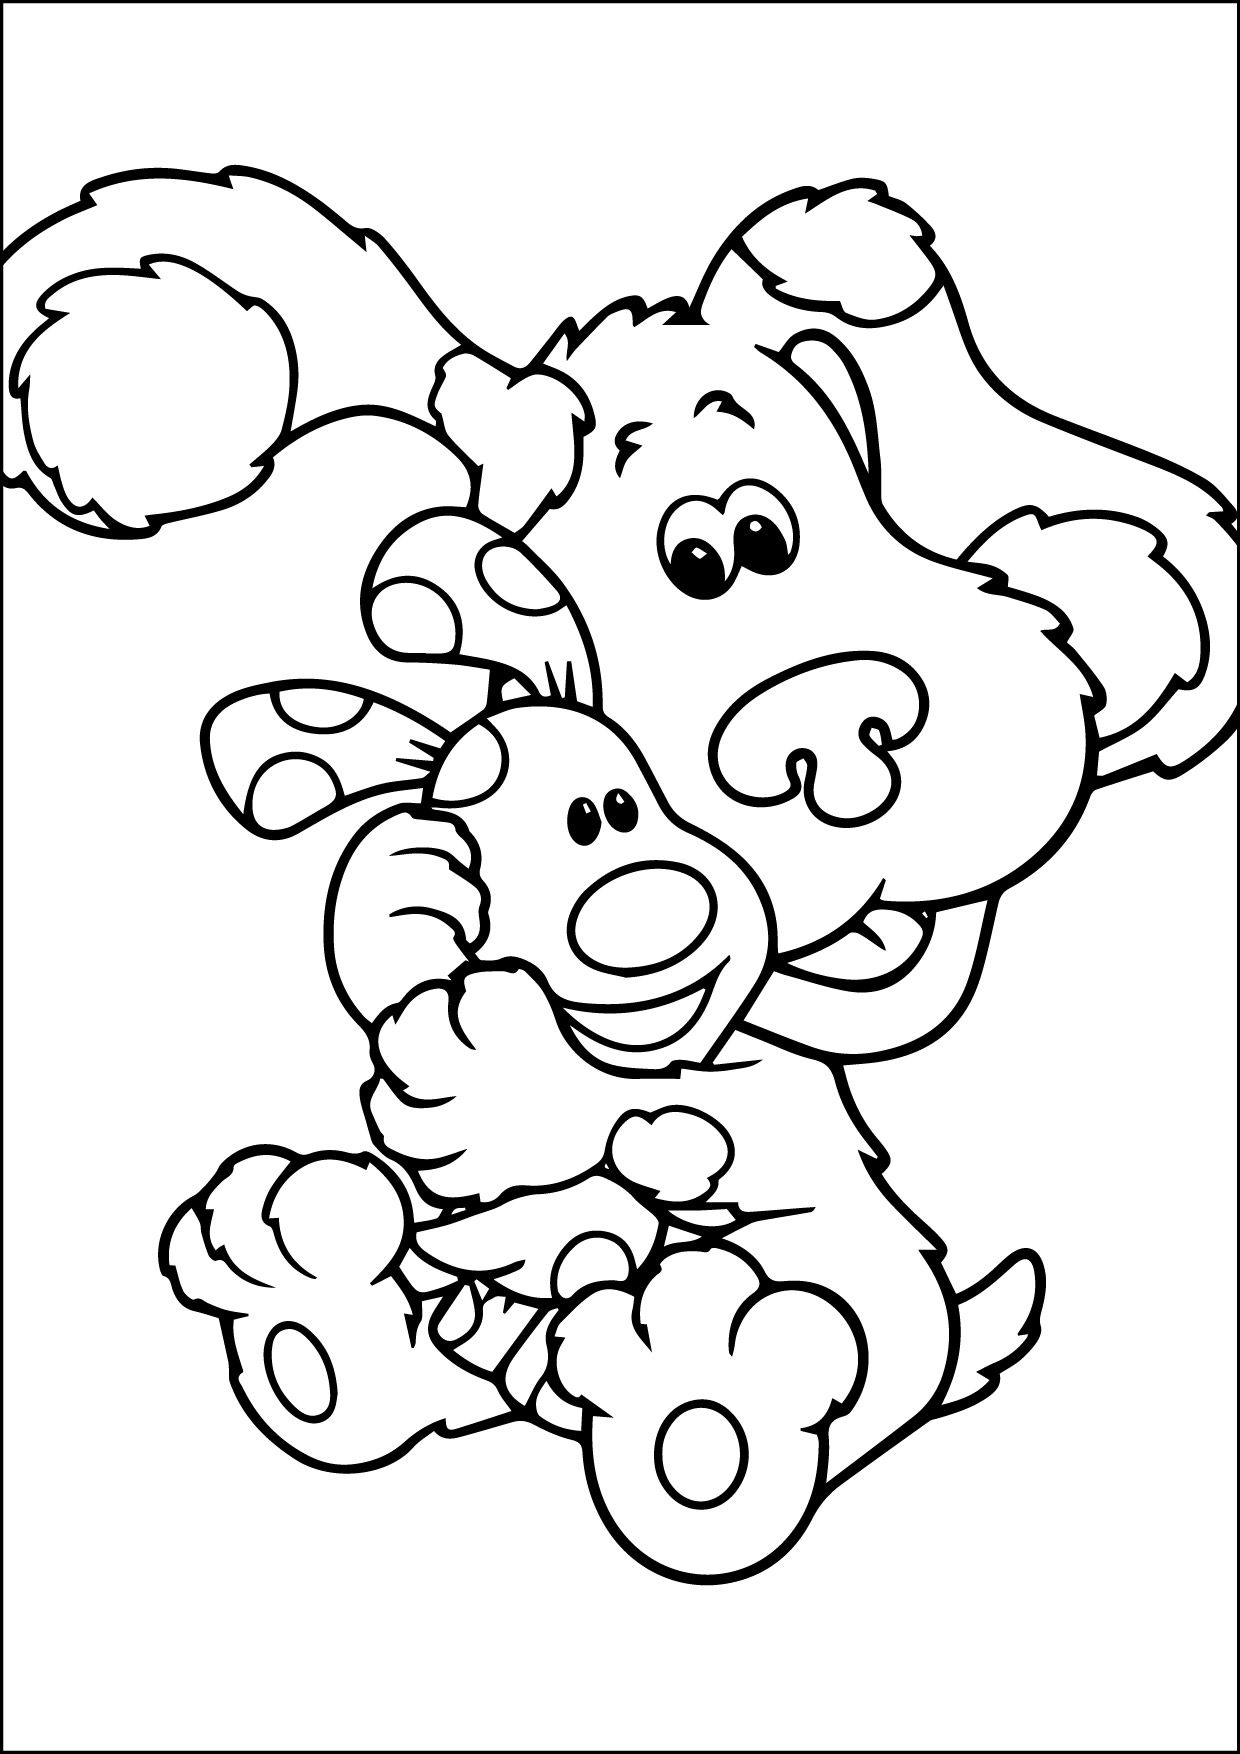 nice blues clues coloring pages Check more at http://www.mcoloring ...